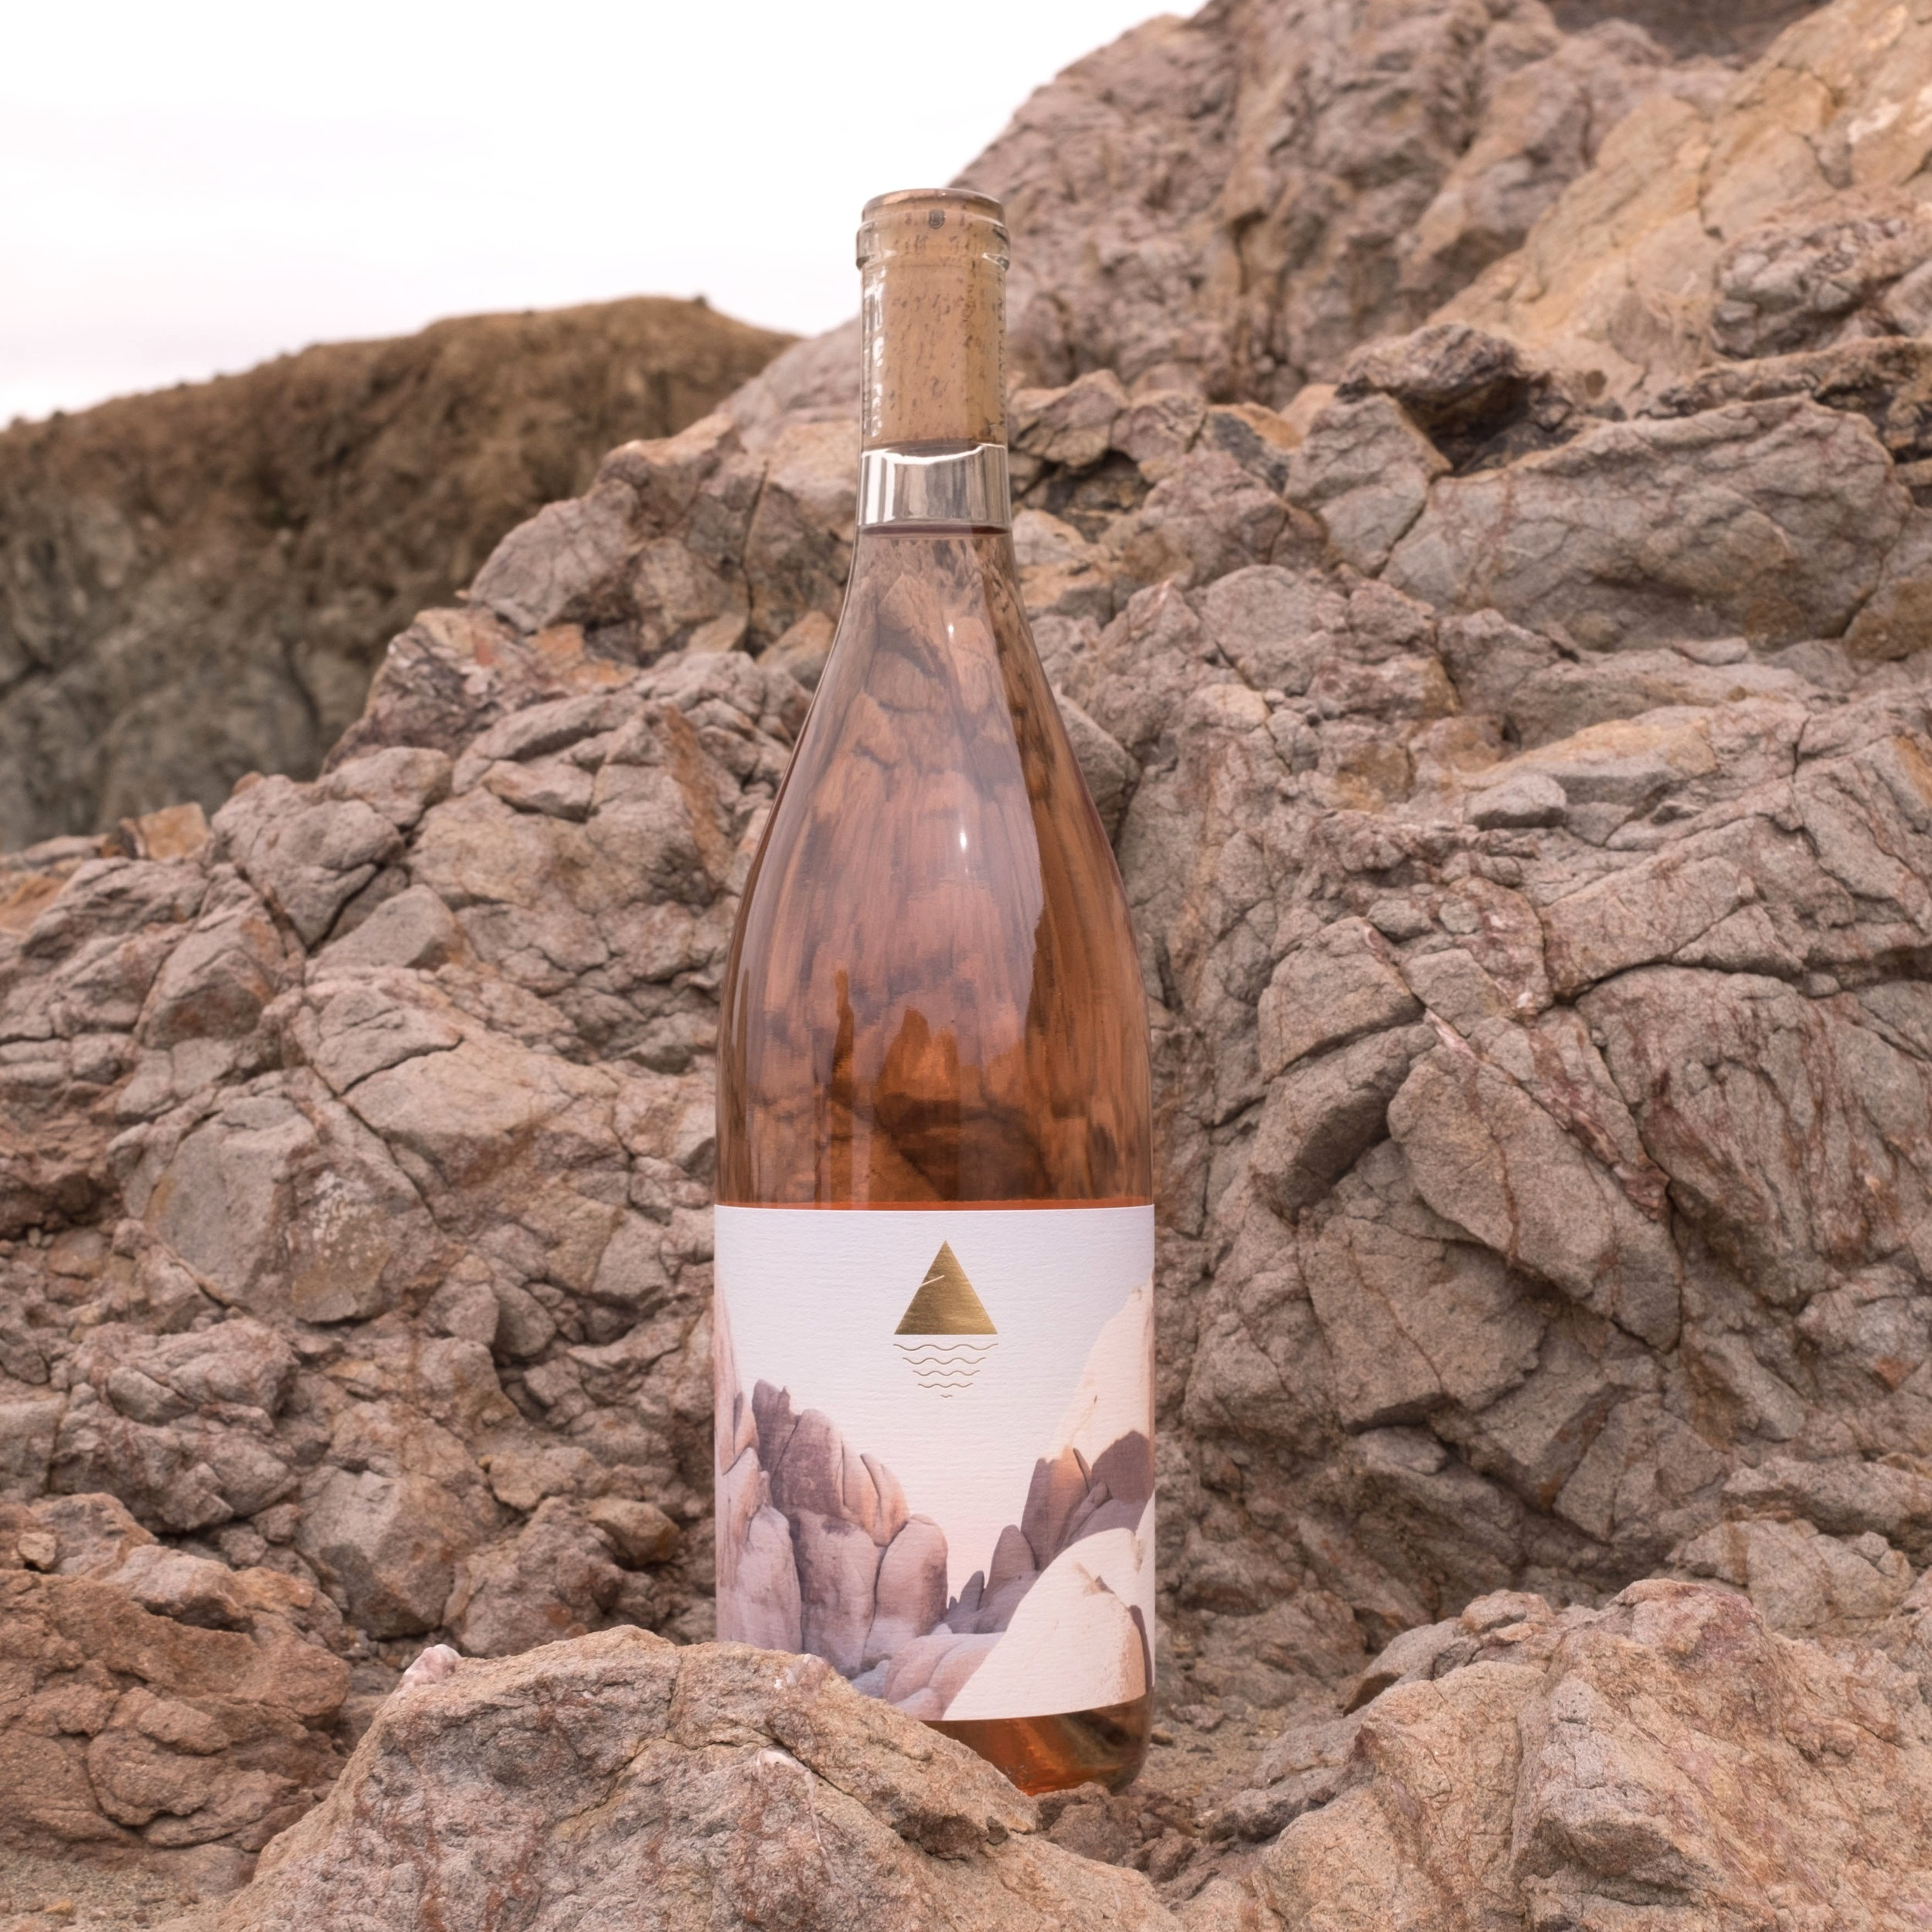 mountaintides-2018-clements-hills-rose-of-petite-sirah-spring-wine-release-2019-allison-watkins-photography.jpg